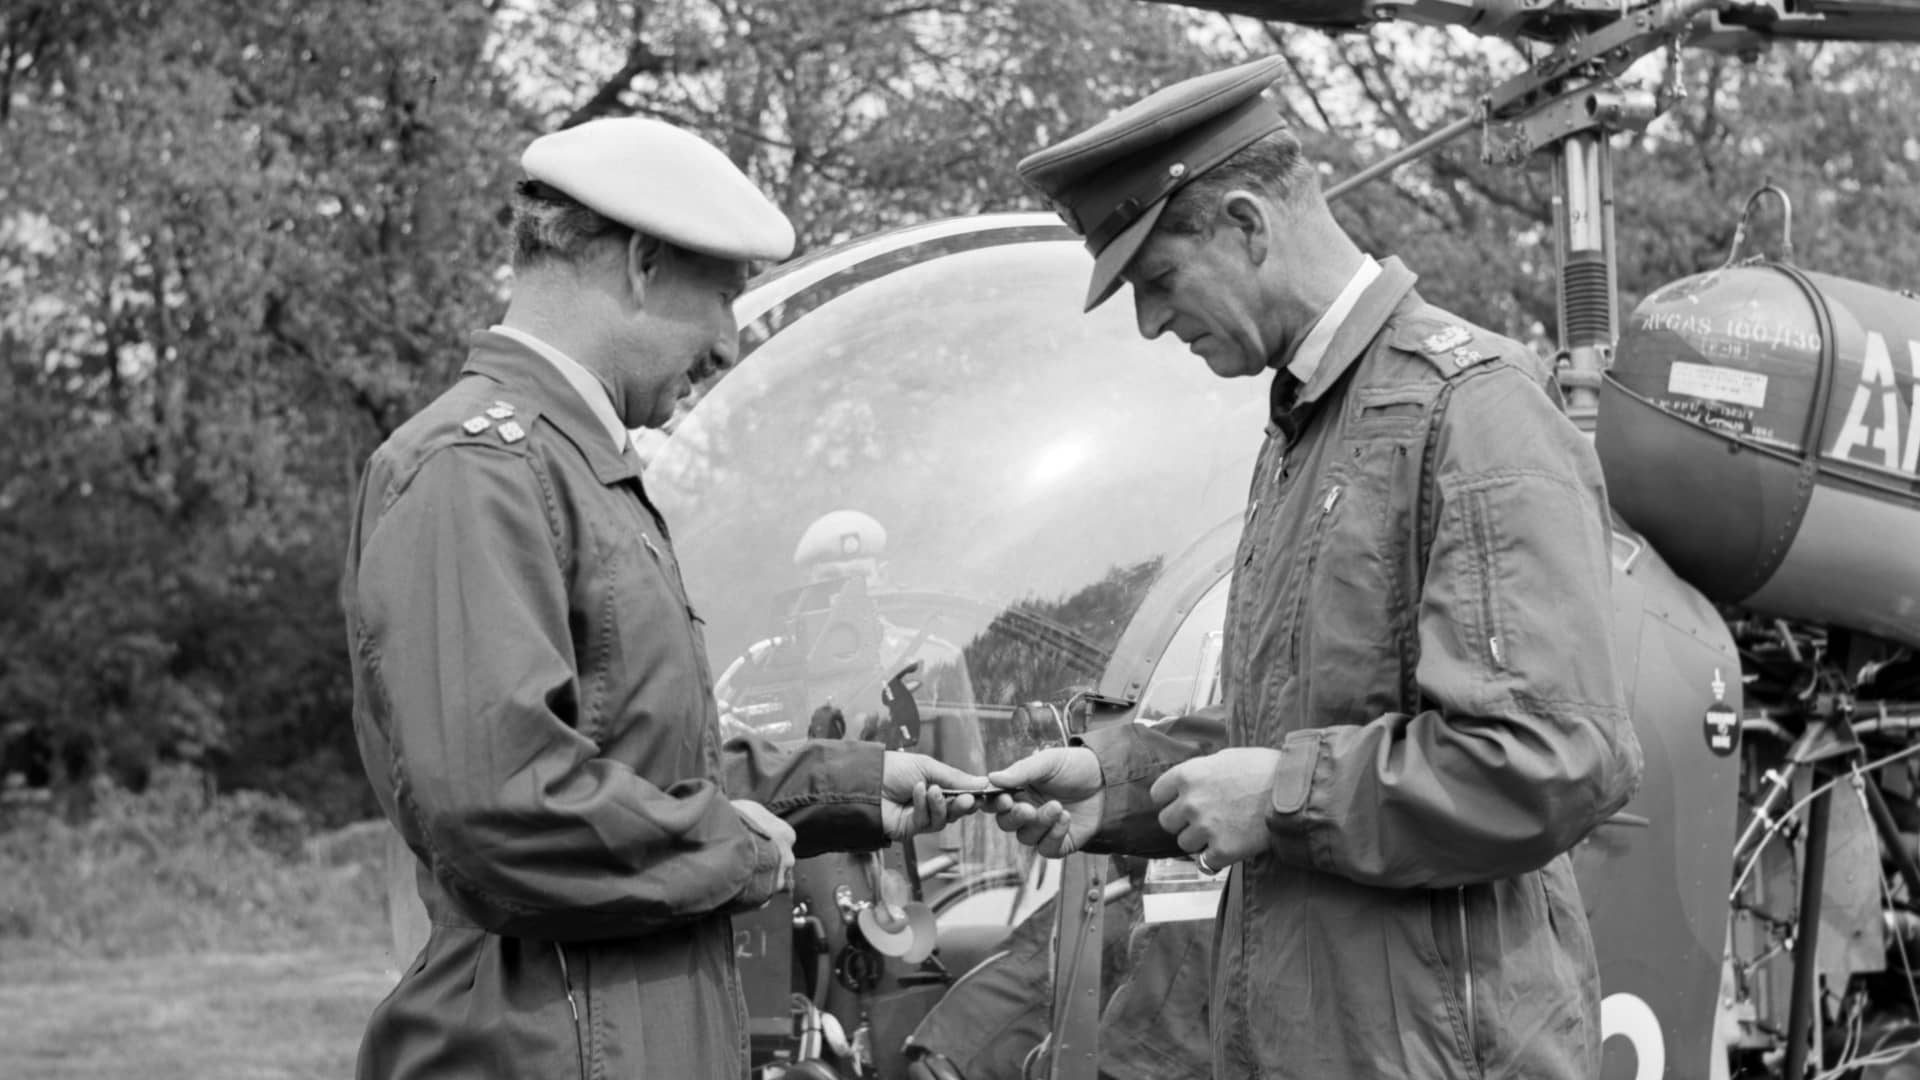 Prince Philip, in flying overalls, being presented with his army wings by Brigadier Colin Kennedy, commandant of the Army Air Corps Centre, during the duke's visit.